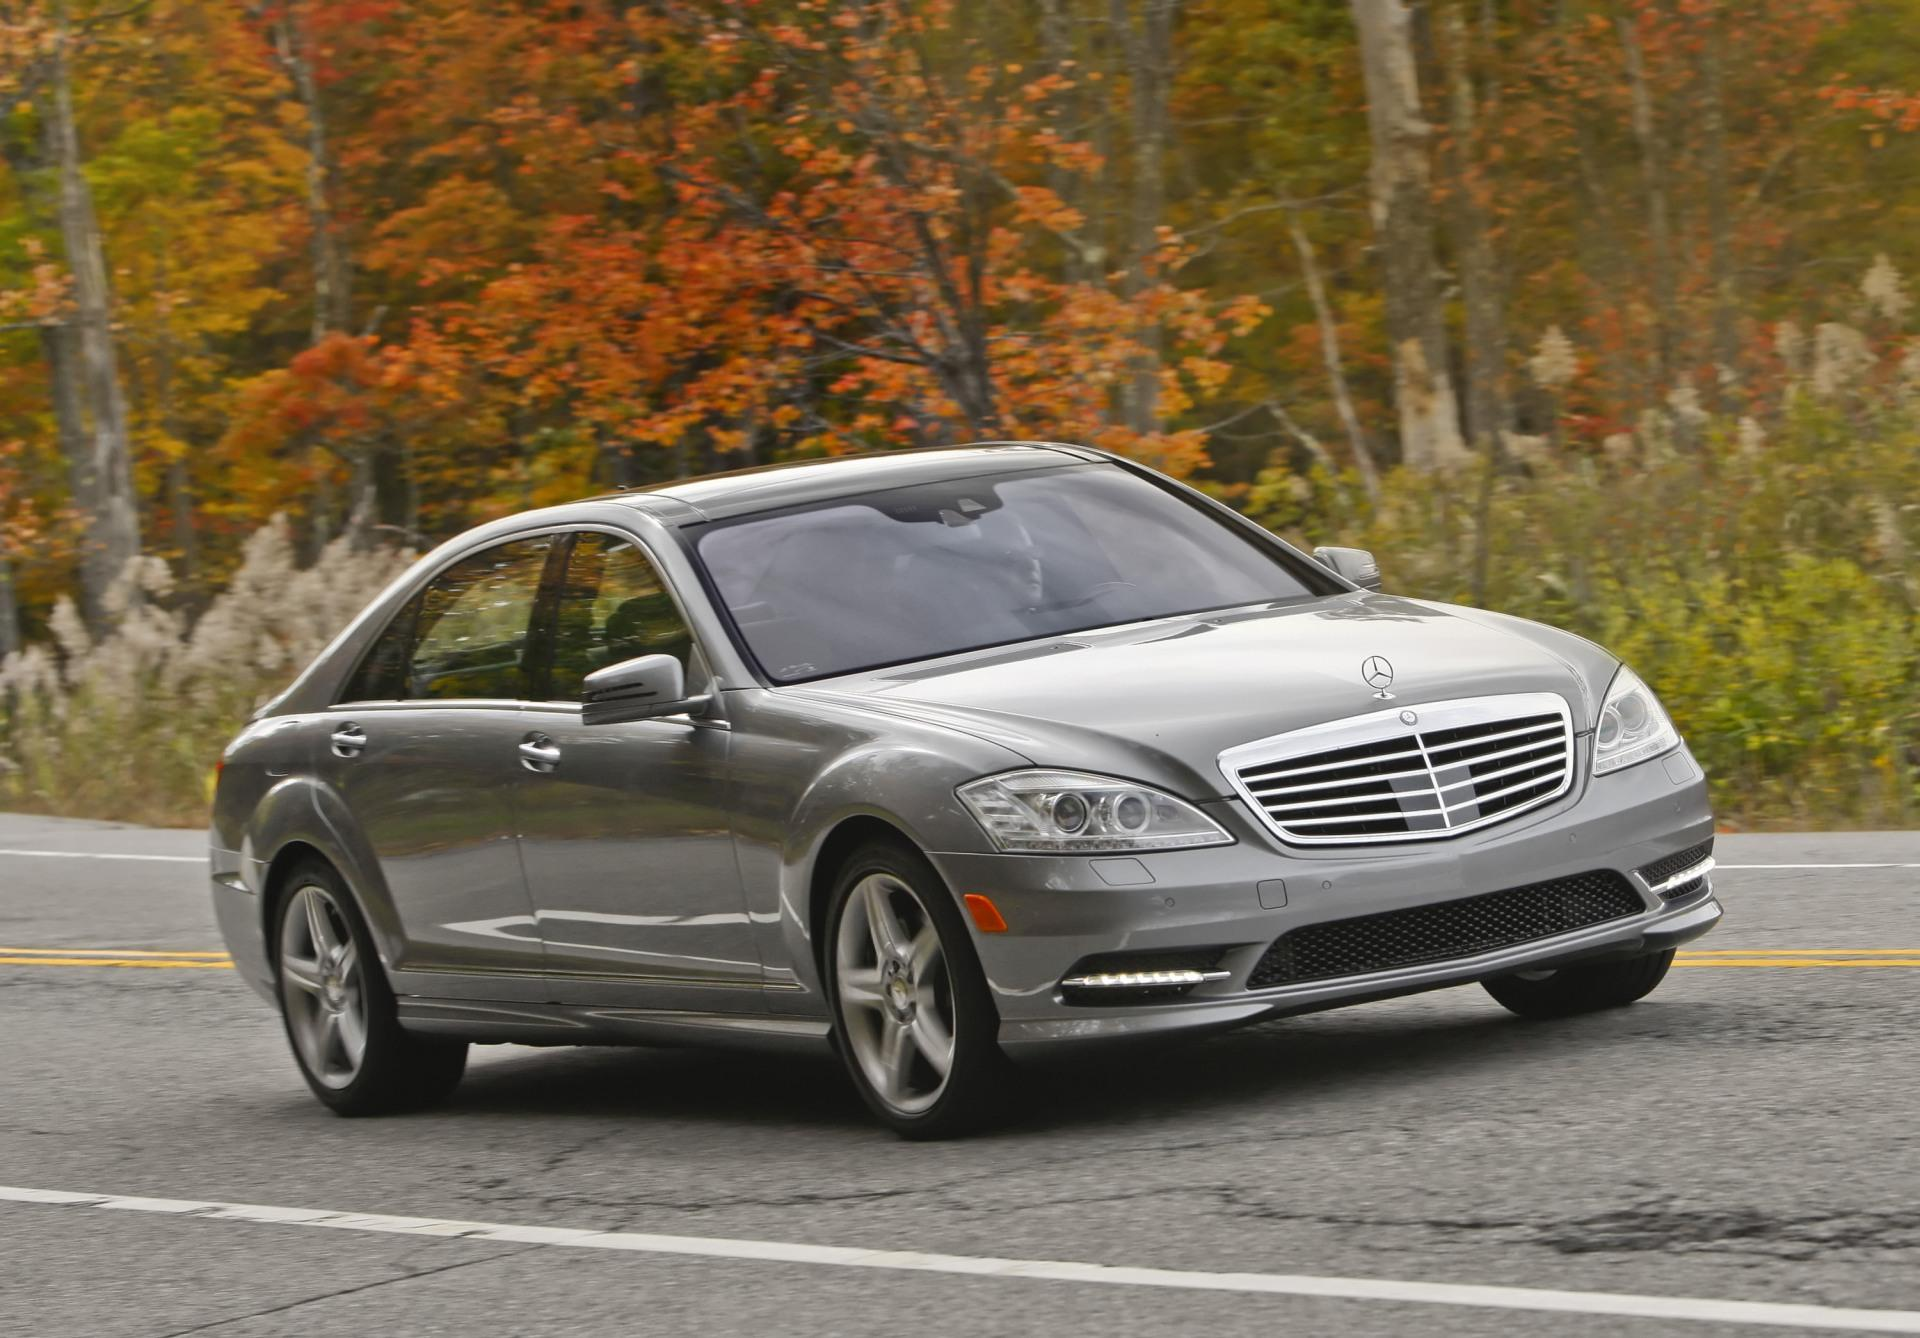 2010 mercedes benz s class image 12 for Mercedes benz s550 4matic 2010